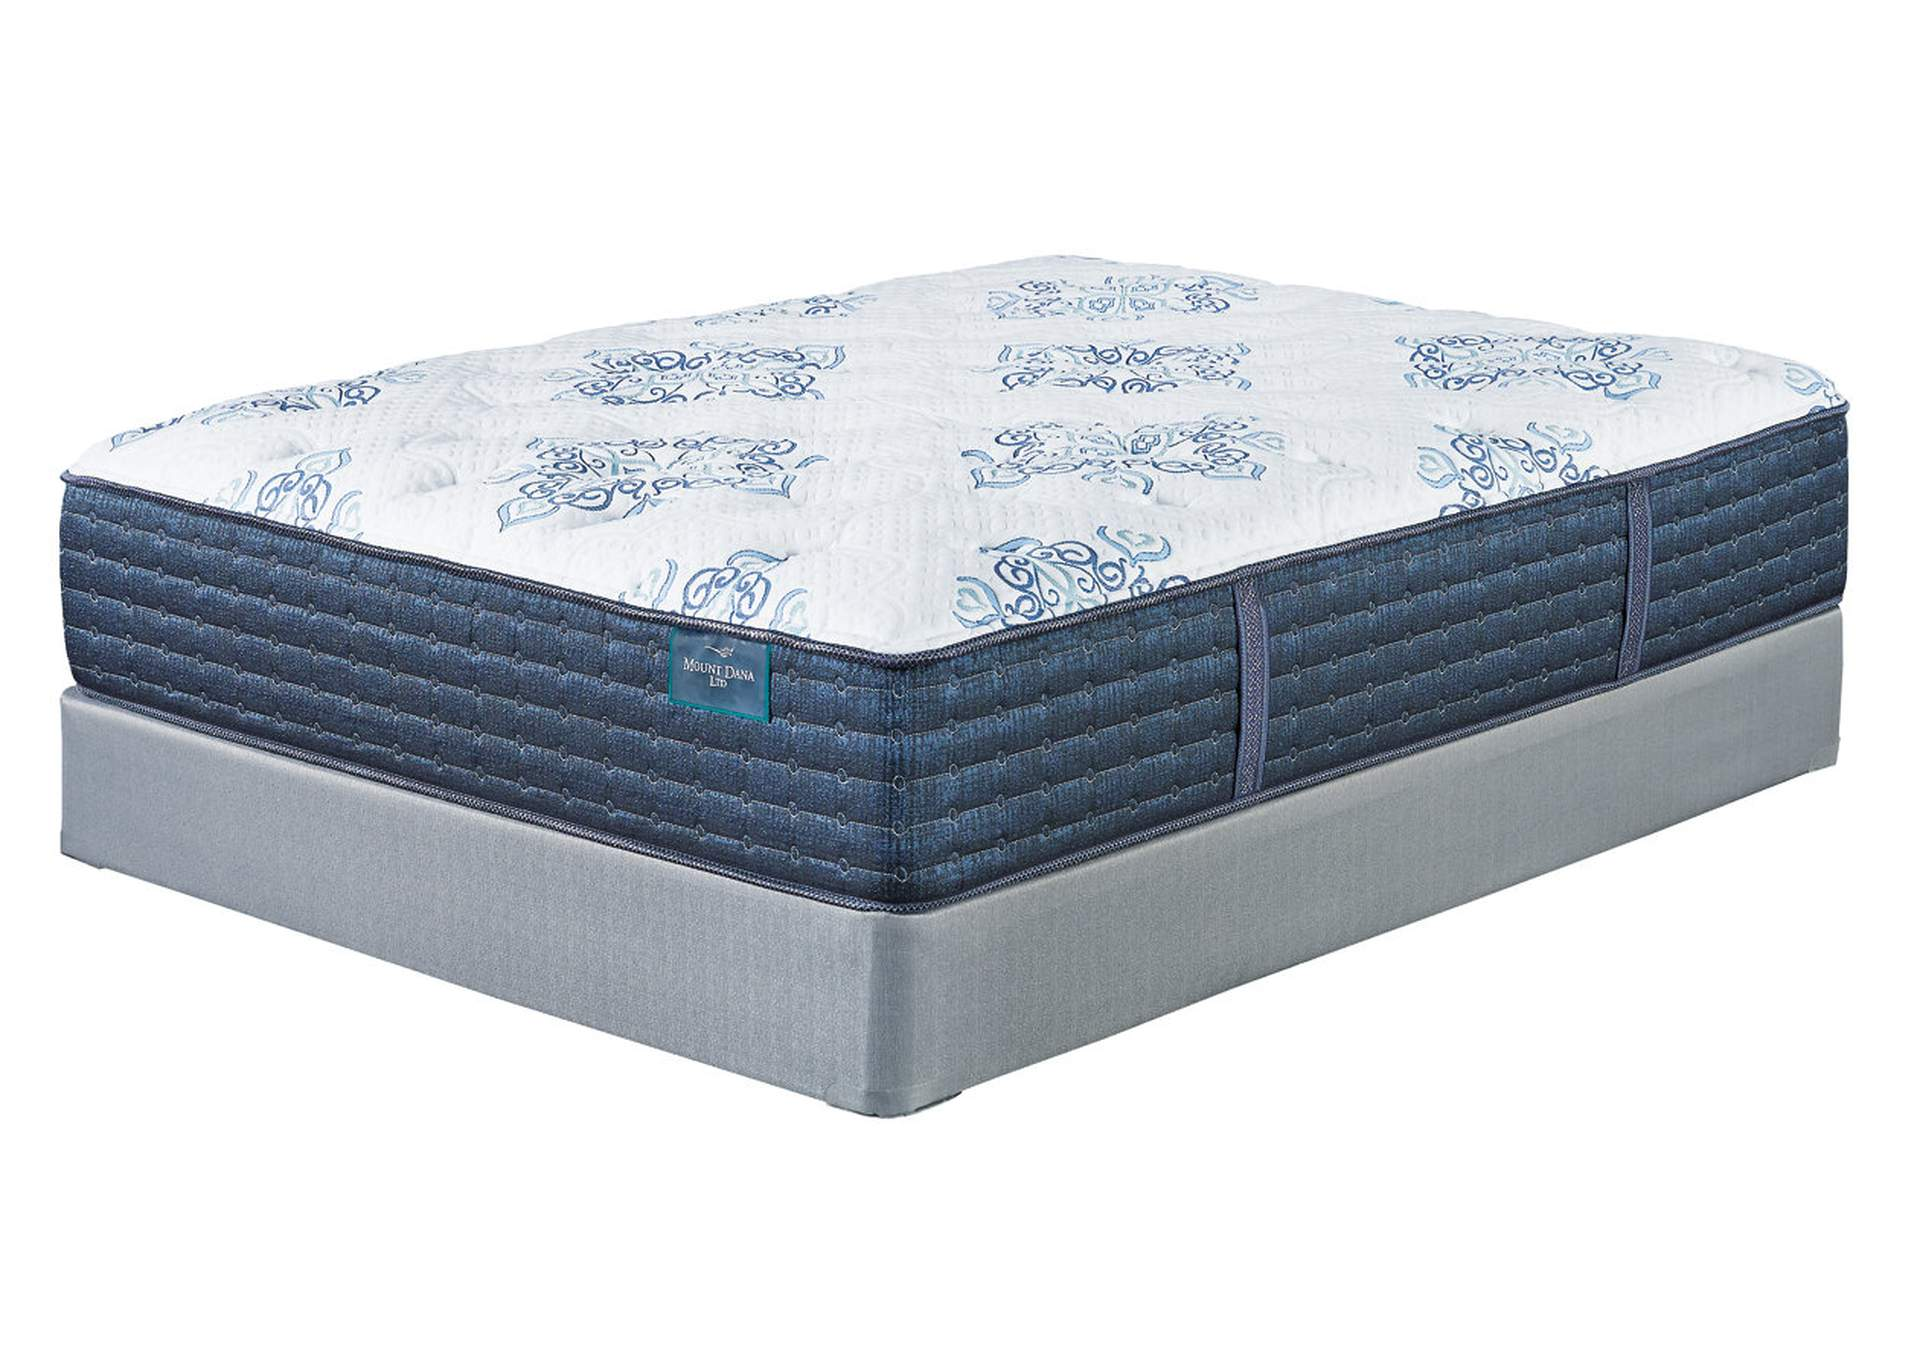 Mt. Dana Plush White Full Mattress,Sierra Sleep by Ashley